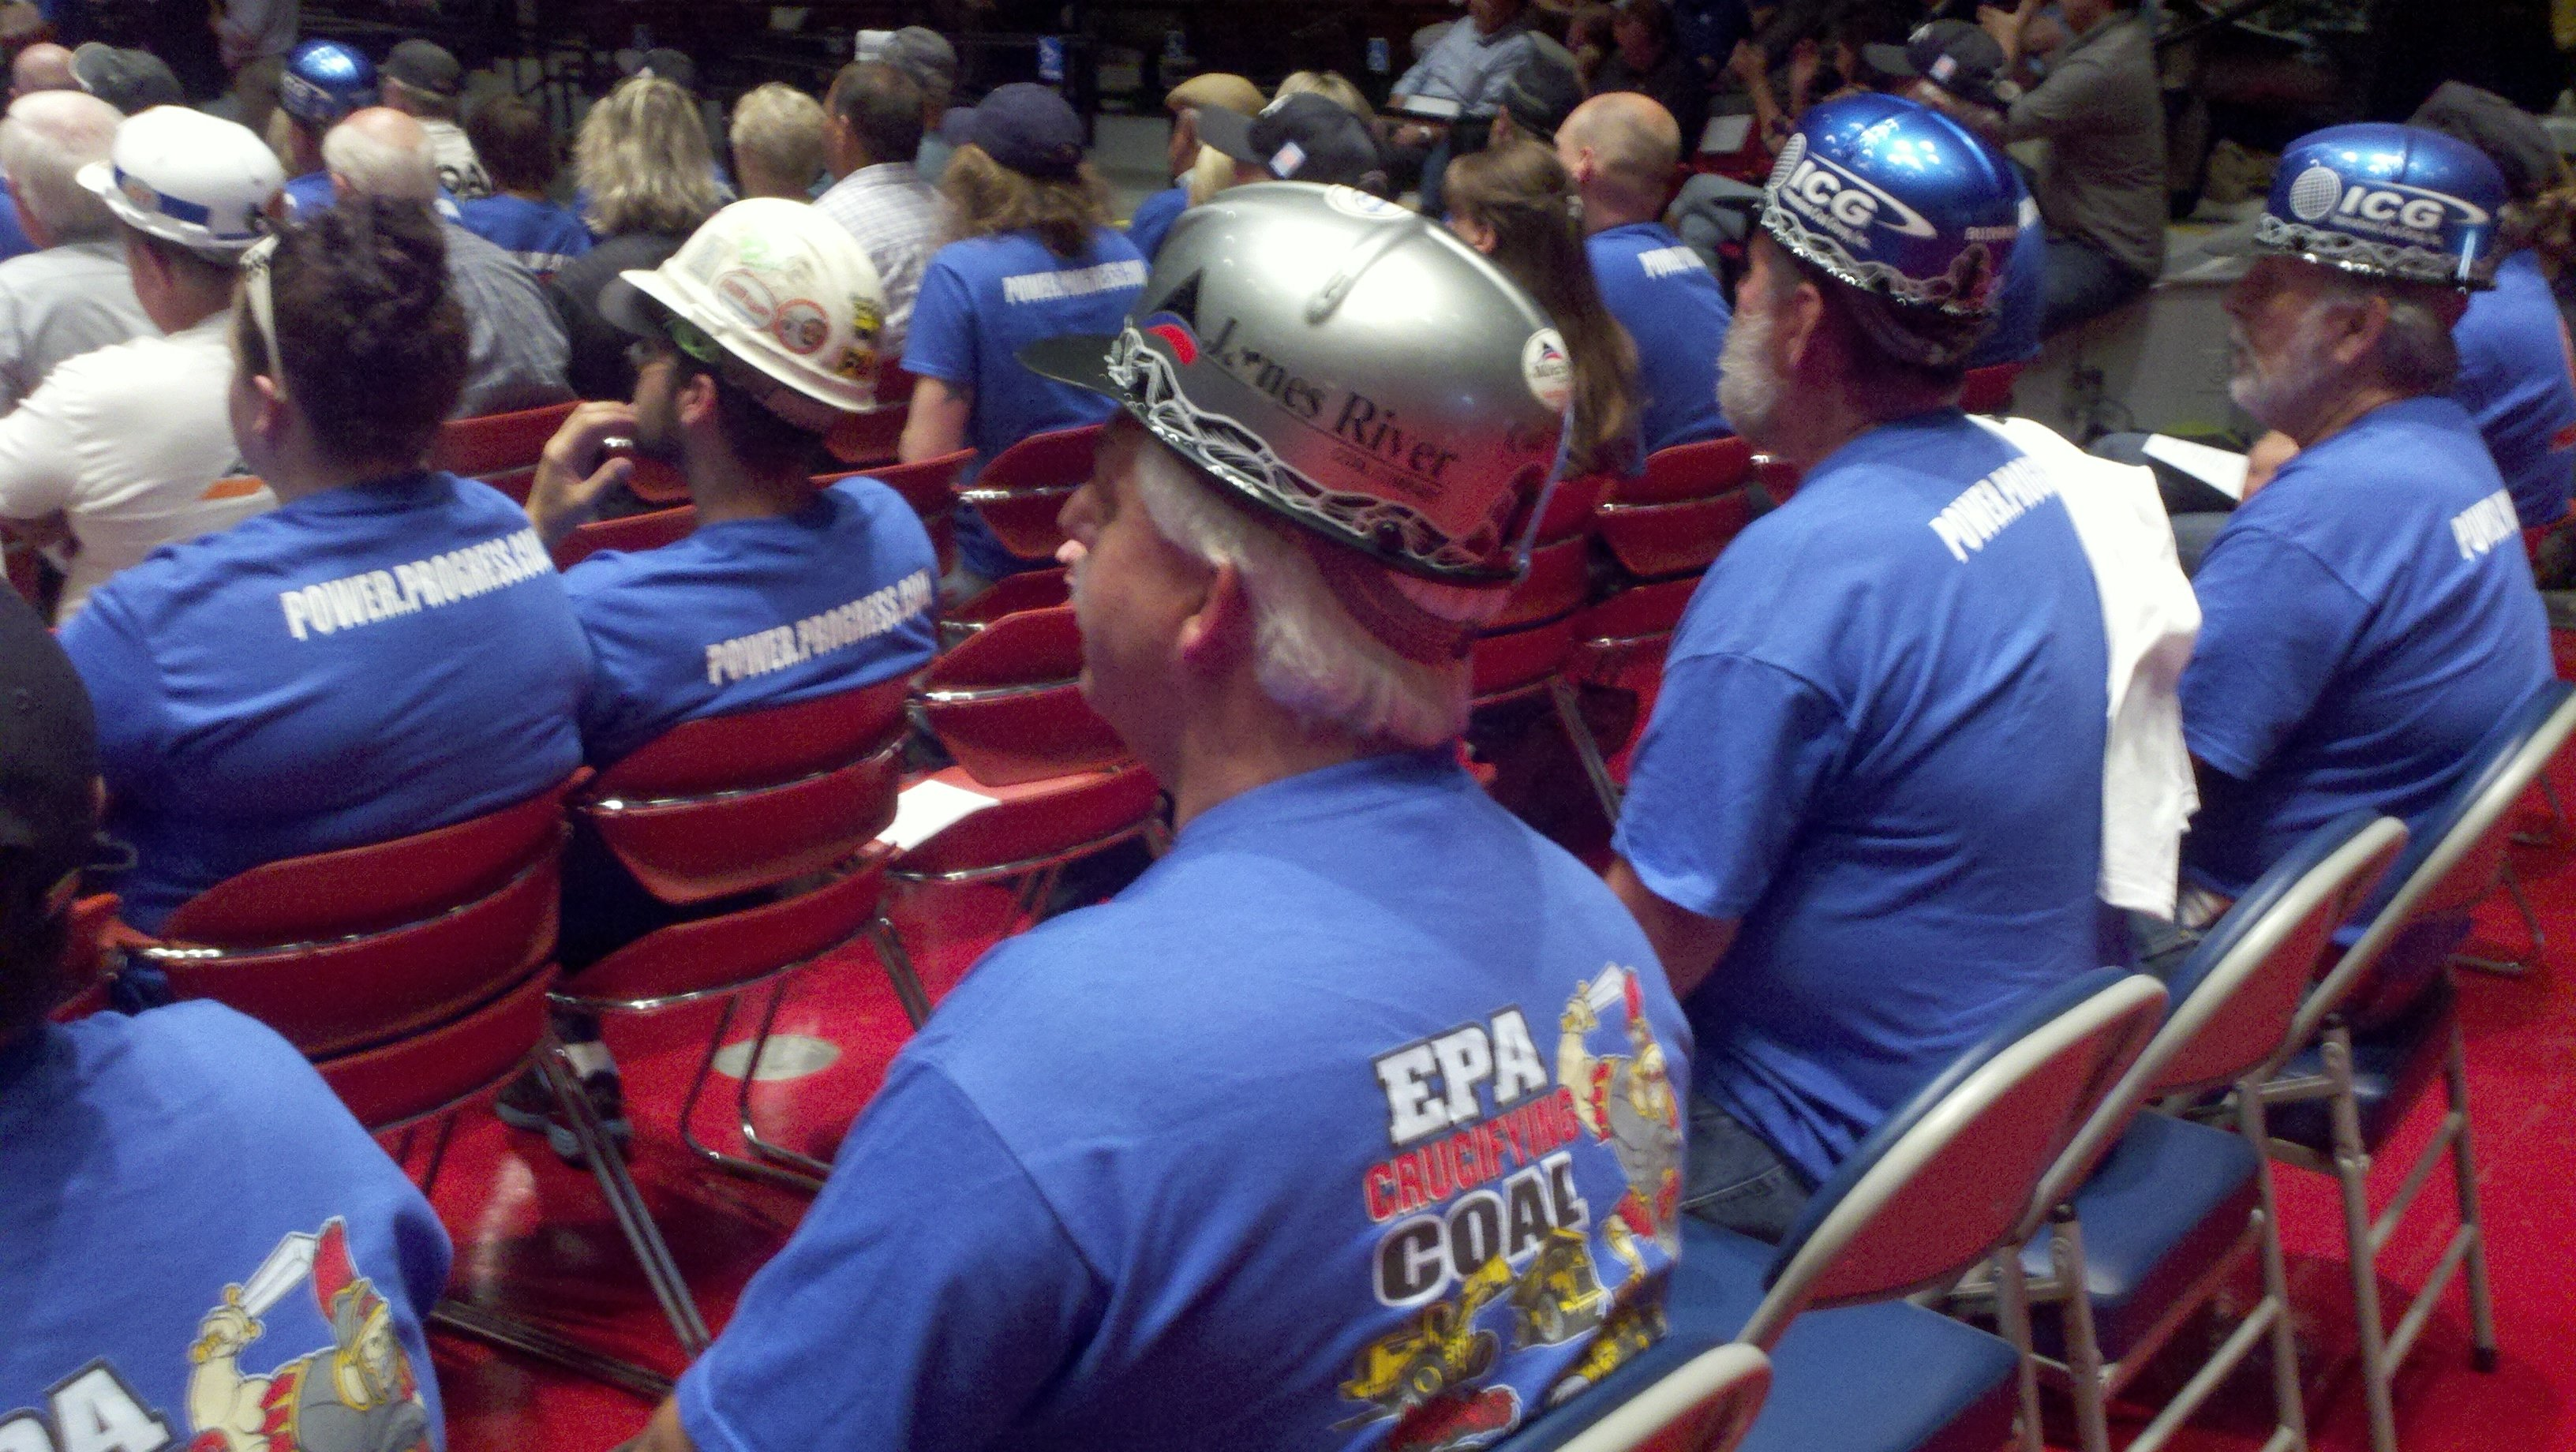 Coal interests wore special t-shirts at EPA hearing in Frankfort Tuesday evening. WDRB News photo.